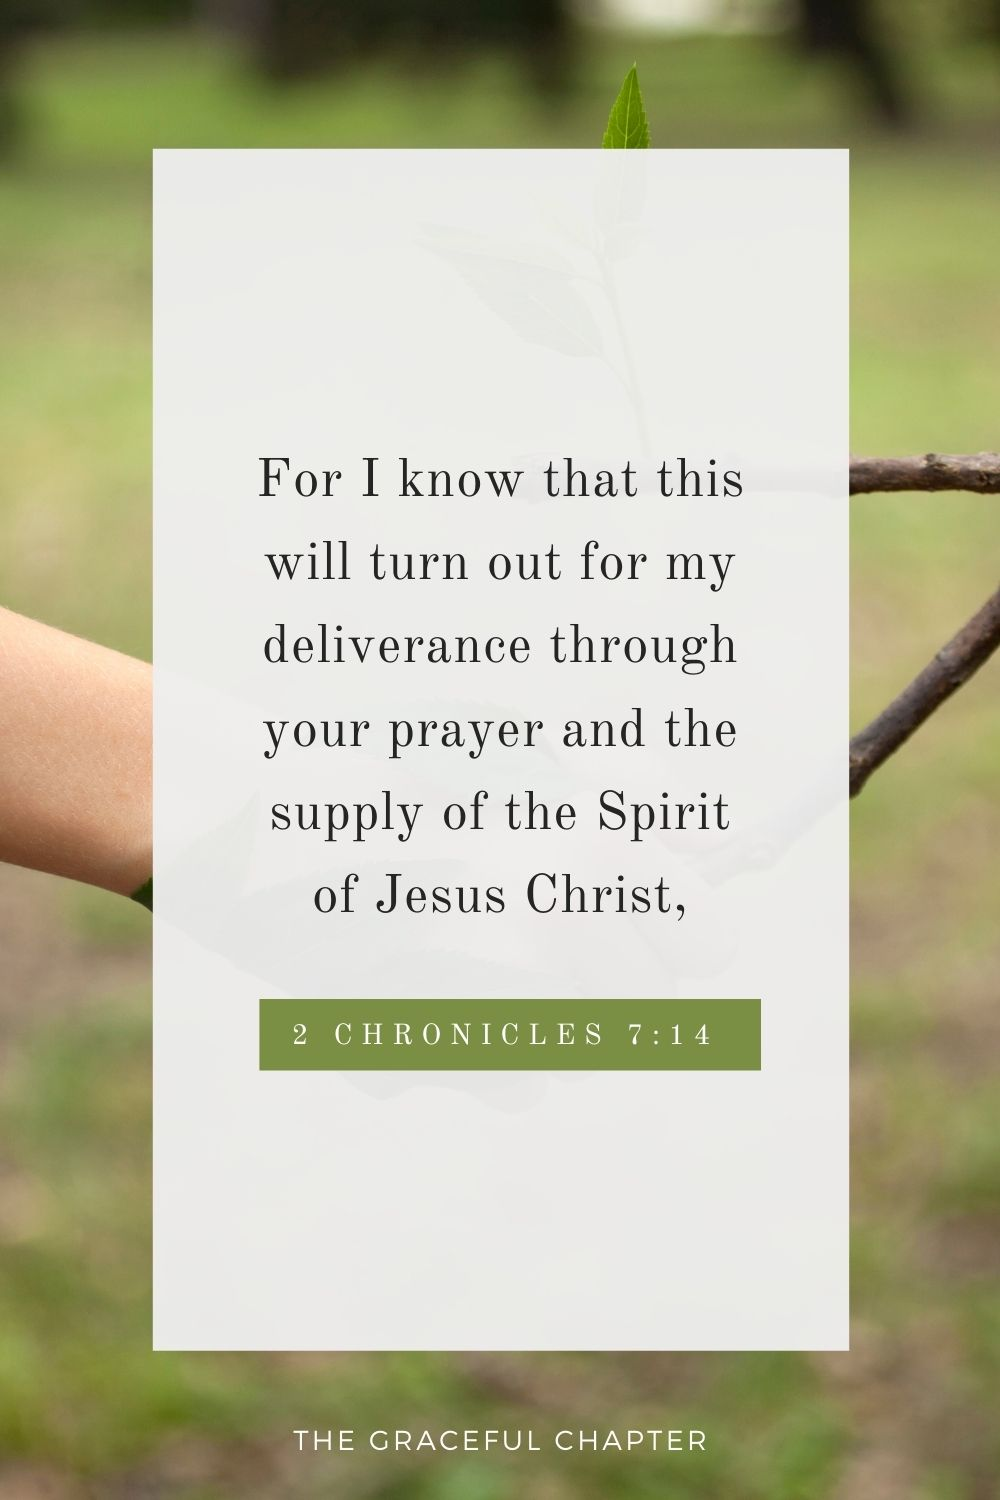 For I know that this will turn out for my deliverance through your prayer and the supply of the Spirit of Jesus Christ, Philippians 1:19